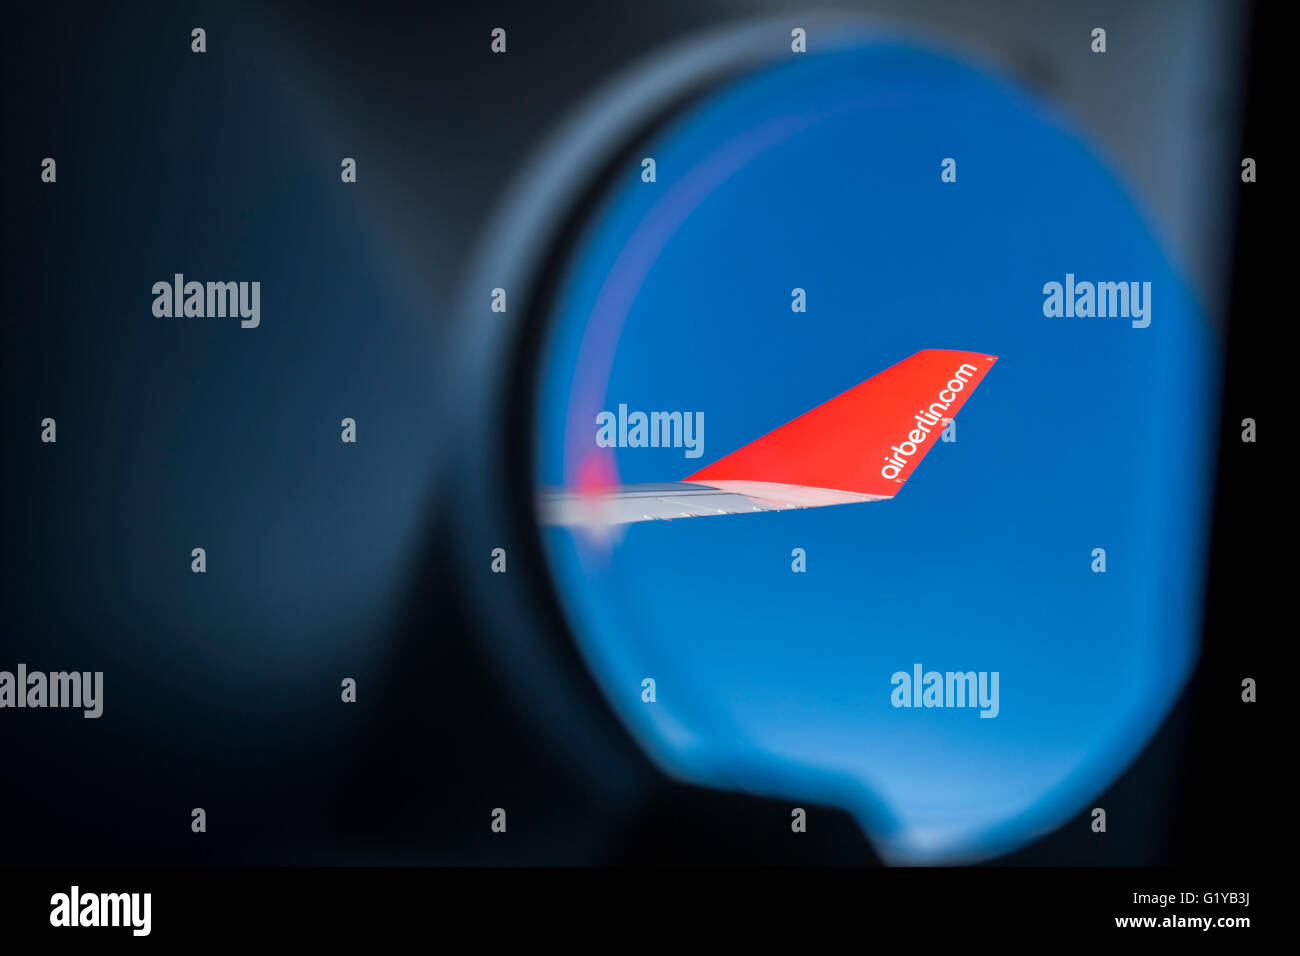 Air Berlin wing showing the airline name on winglet - No Sales on Alamy or anywhere else - Stock Image